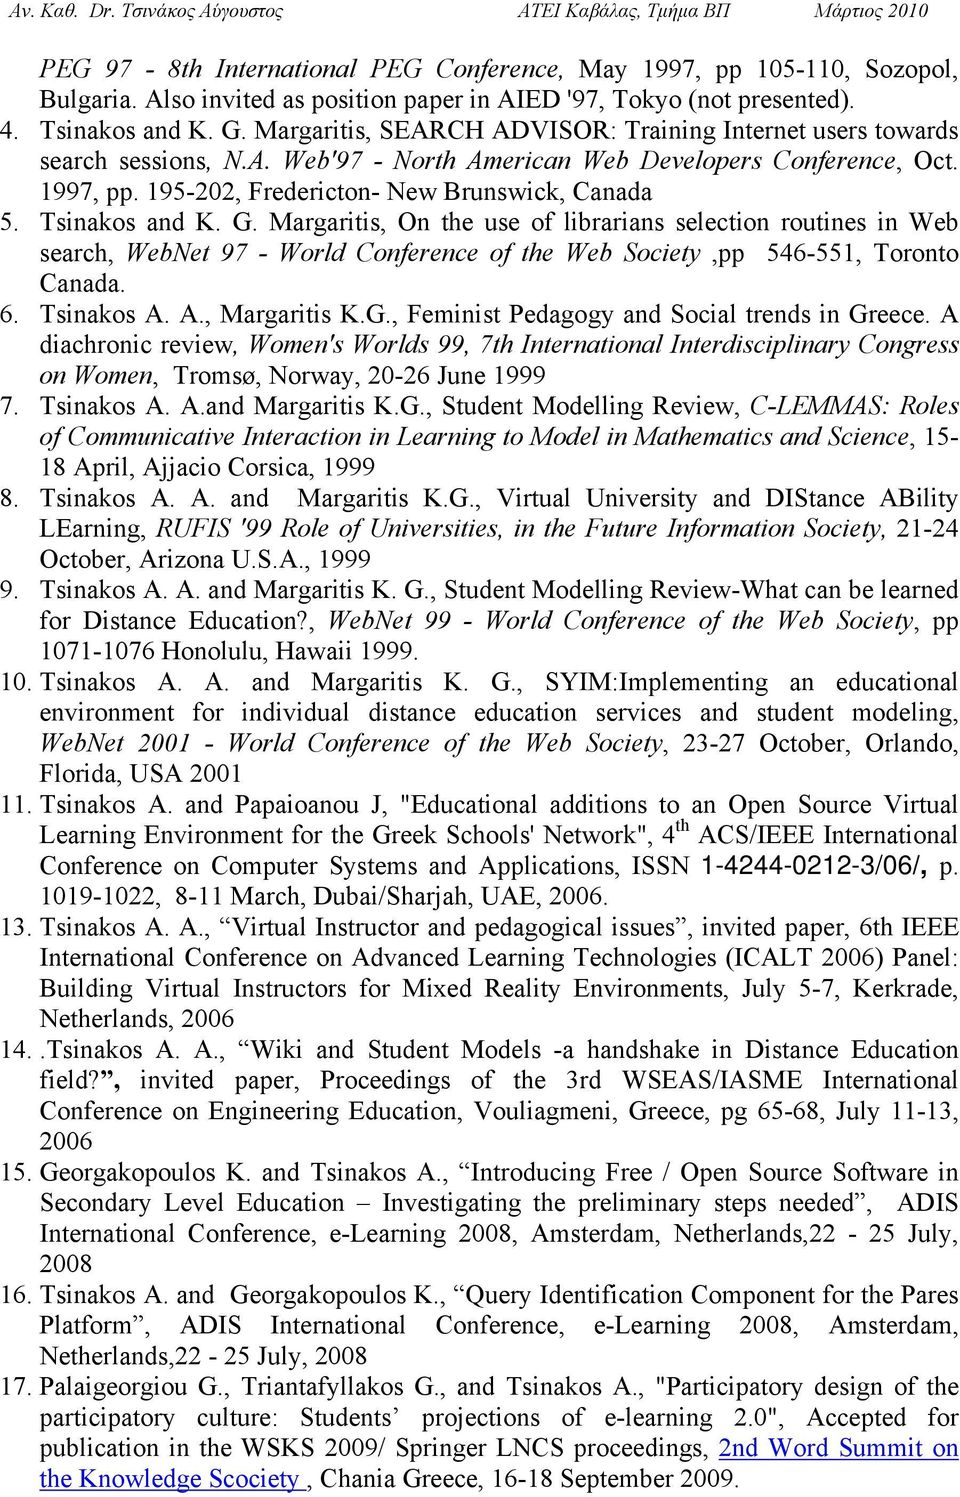 Tsinakos and K. G. Margaritis, On the use of librarians selection routines in Web search, WebNet 97 - World Conference of the Web Society,pp 546-551, Toronto Canada. 6. Tsinakos A. A., Margaritis K.G., Feminist Pedagogy and Social trends in Greece.